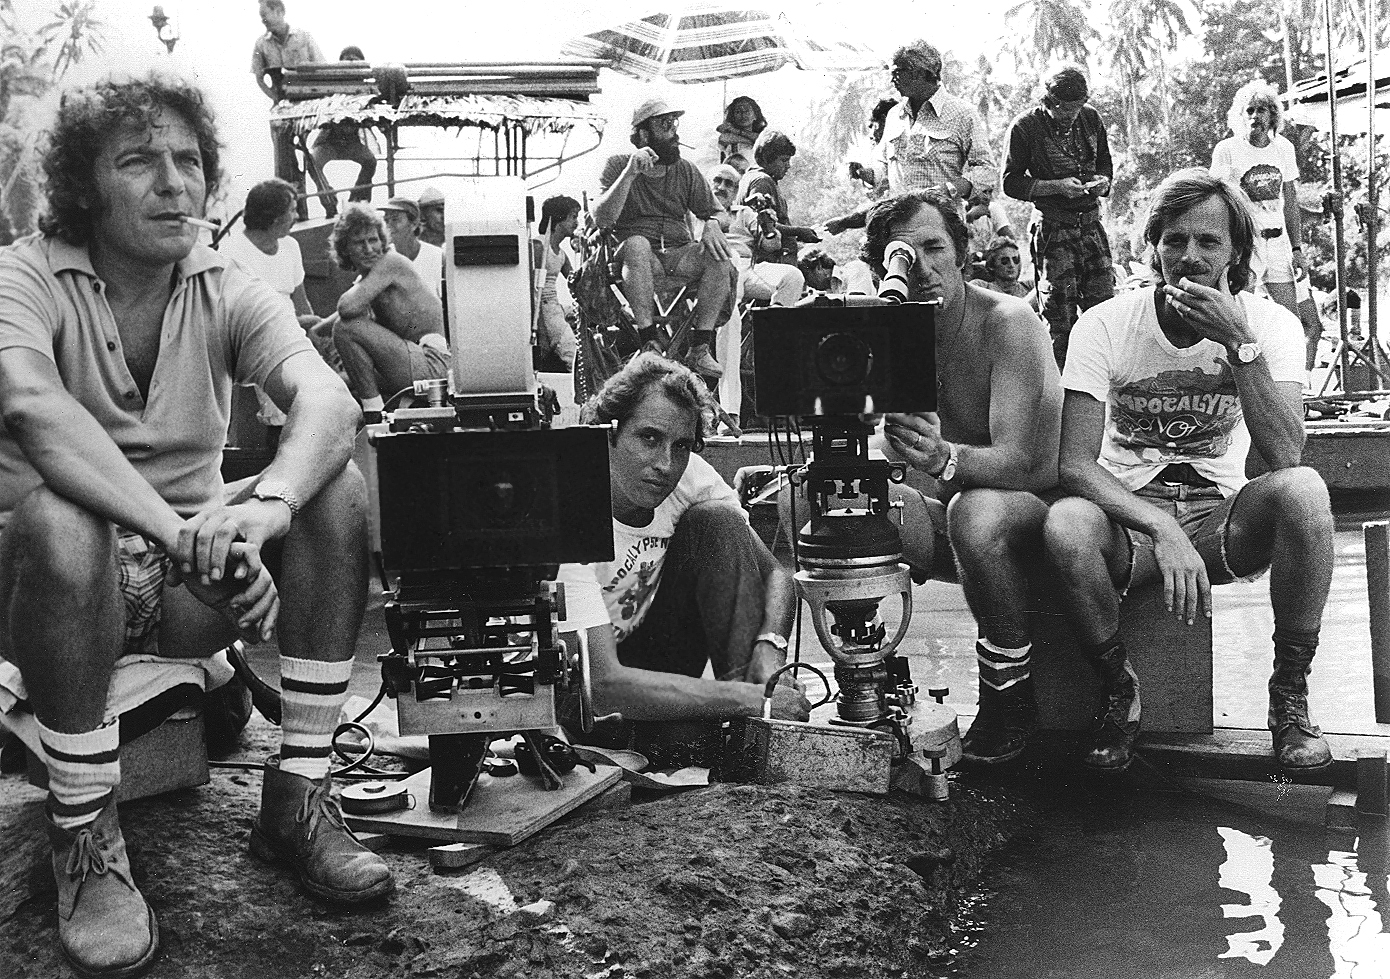 Storaro (kneeling at center) and his crew set up two cameras. Flanking him (from left) are camera assistant Rino Bernardini, operator Enrico Umetelli and camera assistant Mauro Marchetti. In the background, Coppola (seated) chats with AD Jerry Ziesmer (white shirt) as Dennis Hopper (in camo pants) stands by.